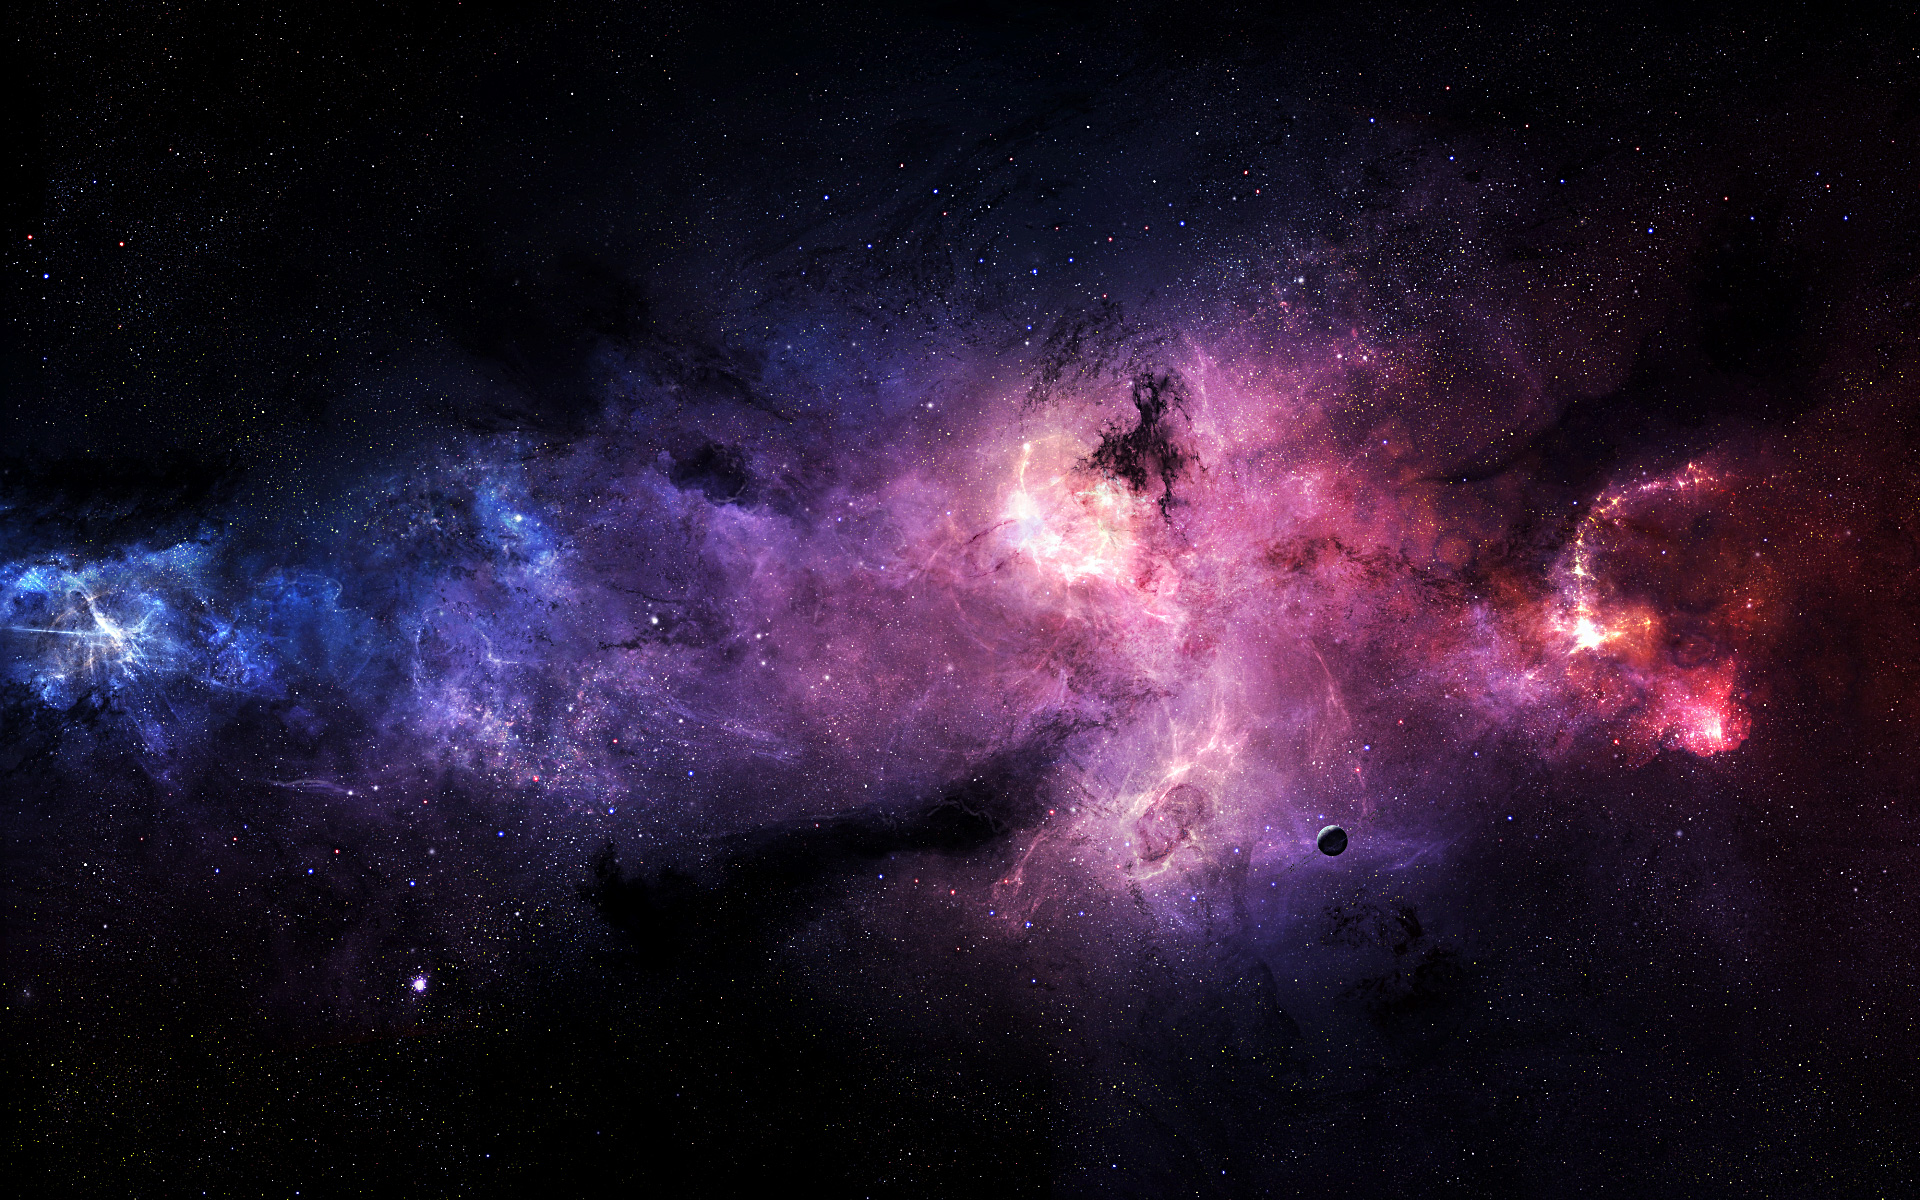 Outer Space Wallpaper - High Resolution Space Hd , HD Wallpaper & Backgrounds